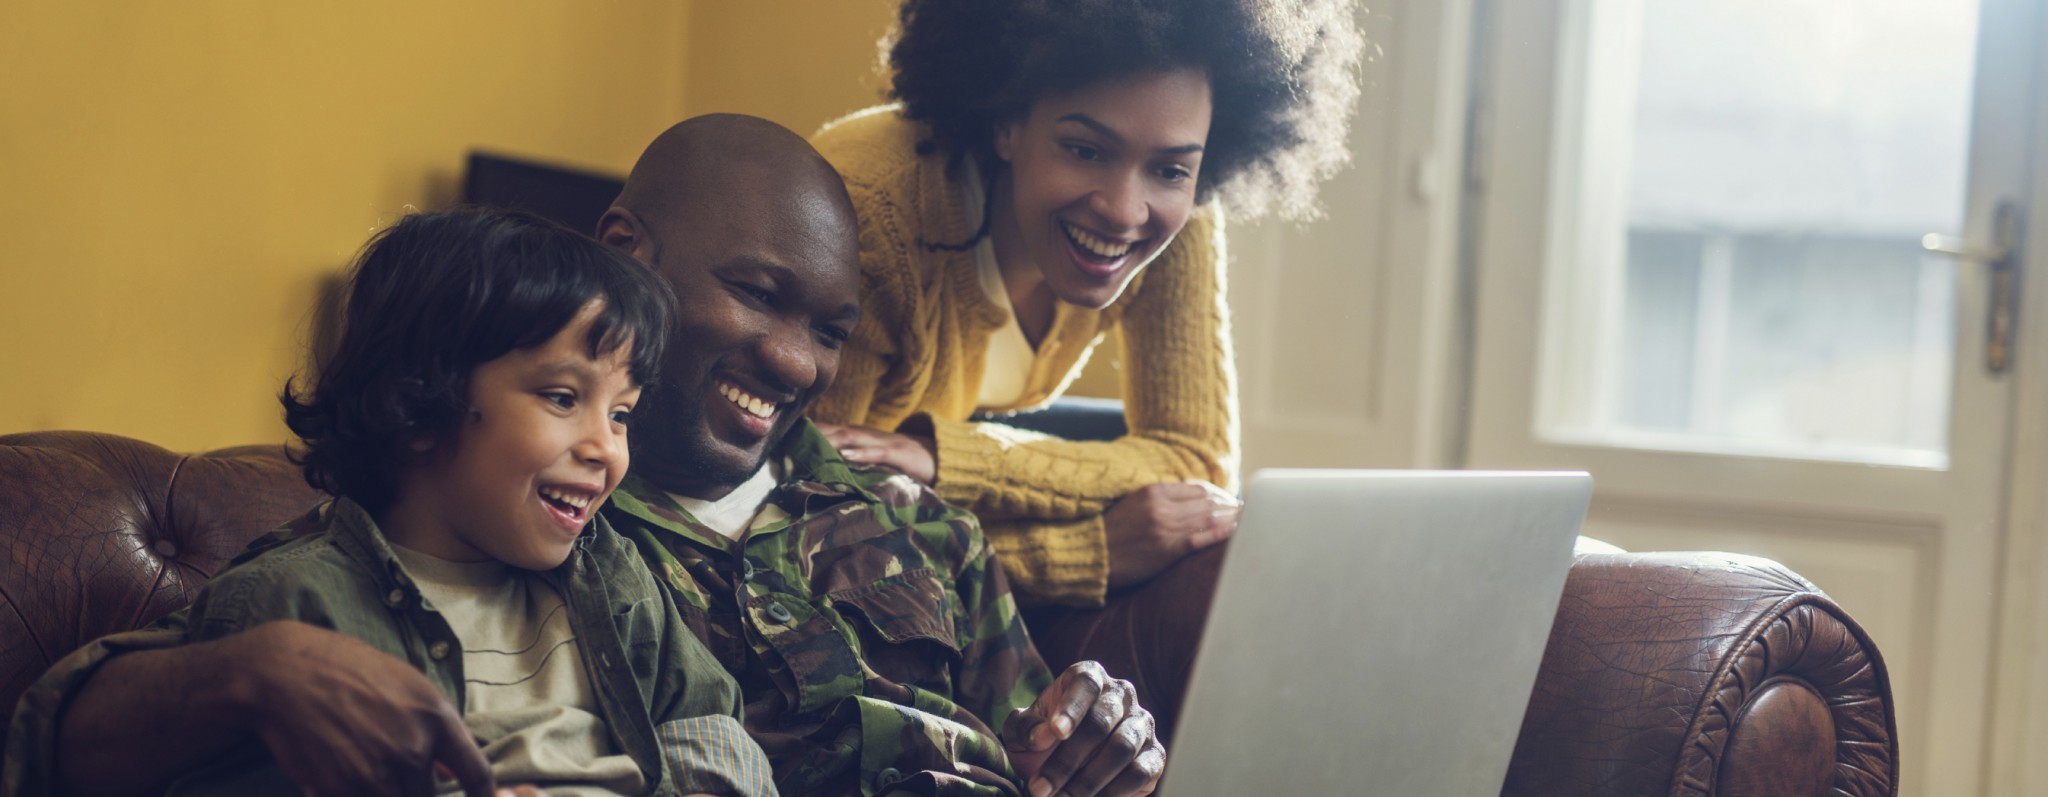 5 Best Military Banks and Credit Unions of 2019 - NerdWallet